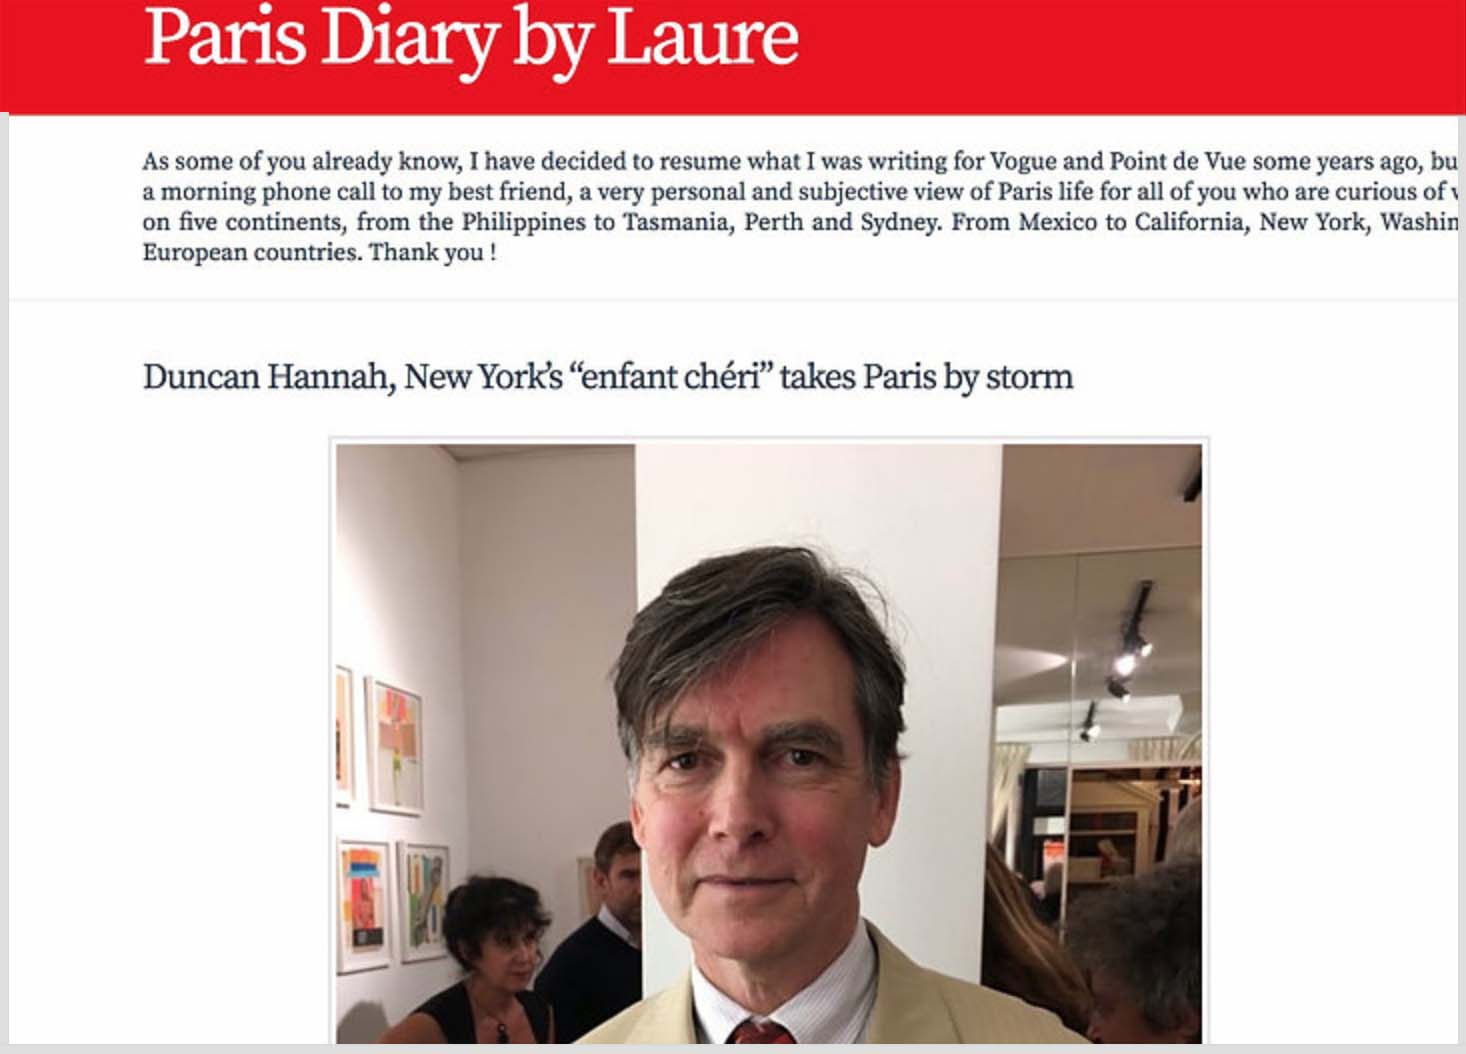 Paris Diary by Laure